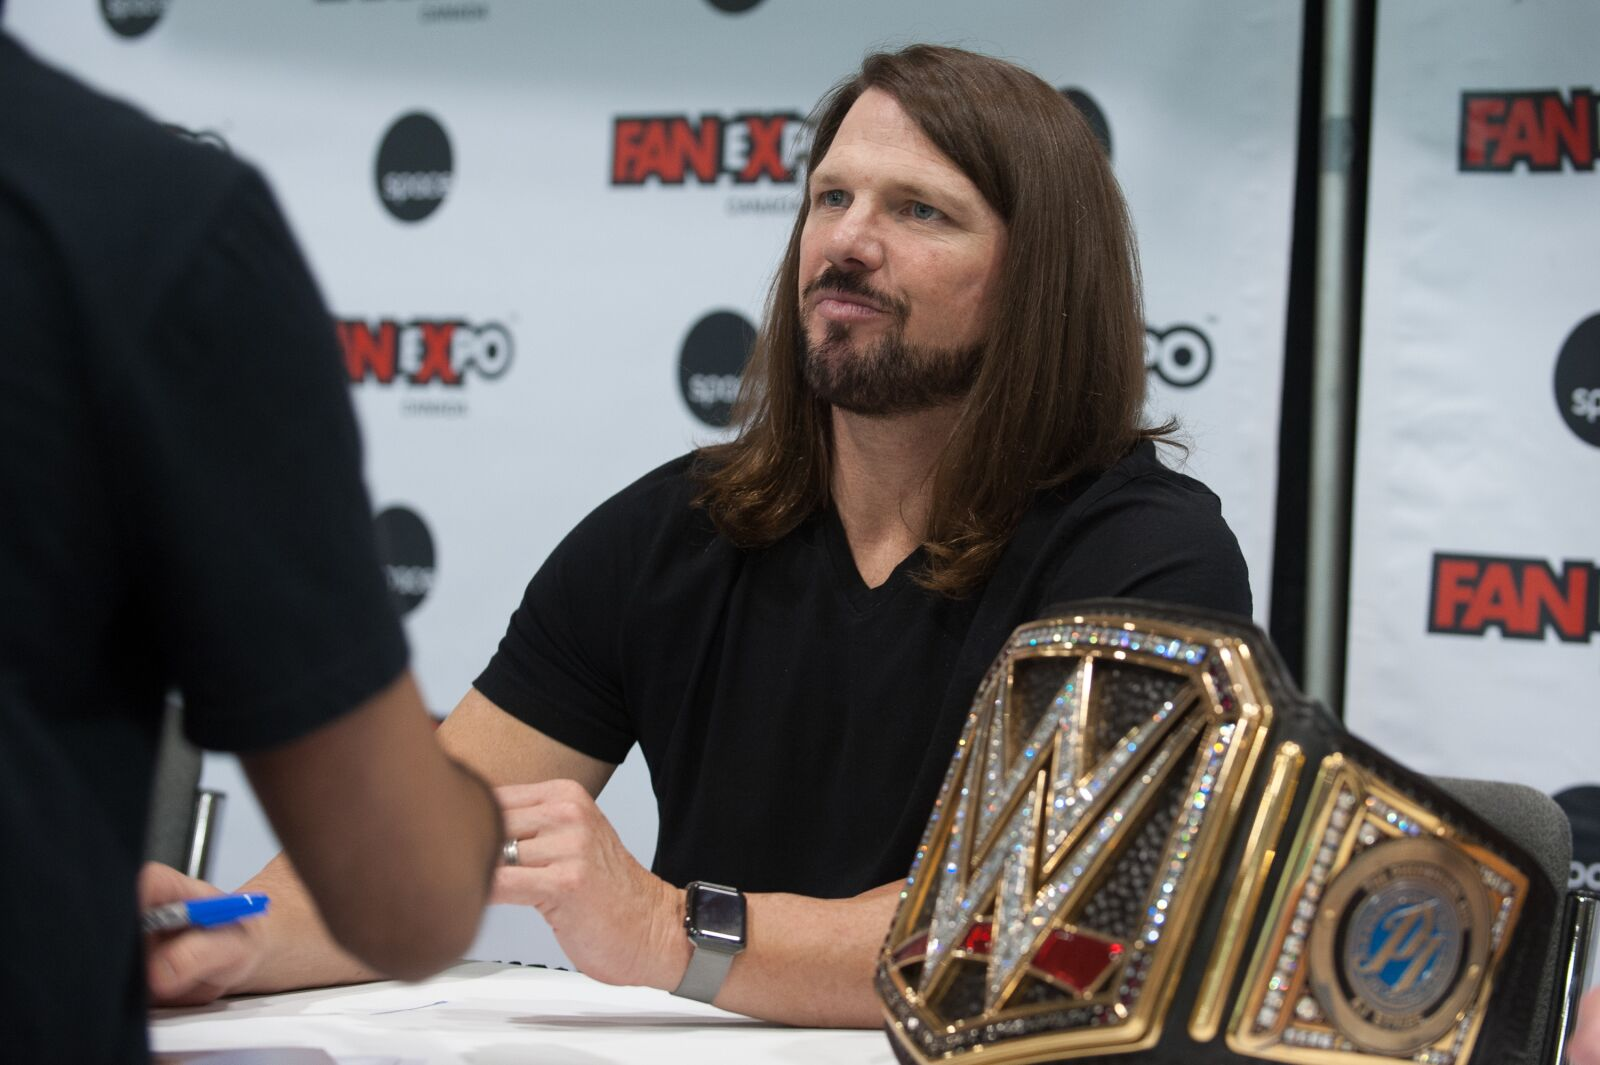 Report: AJ Styles, WWE have agreed to 'major points' of new contract